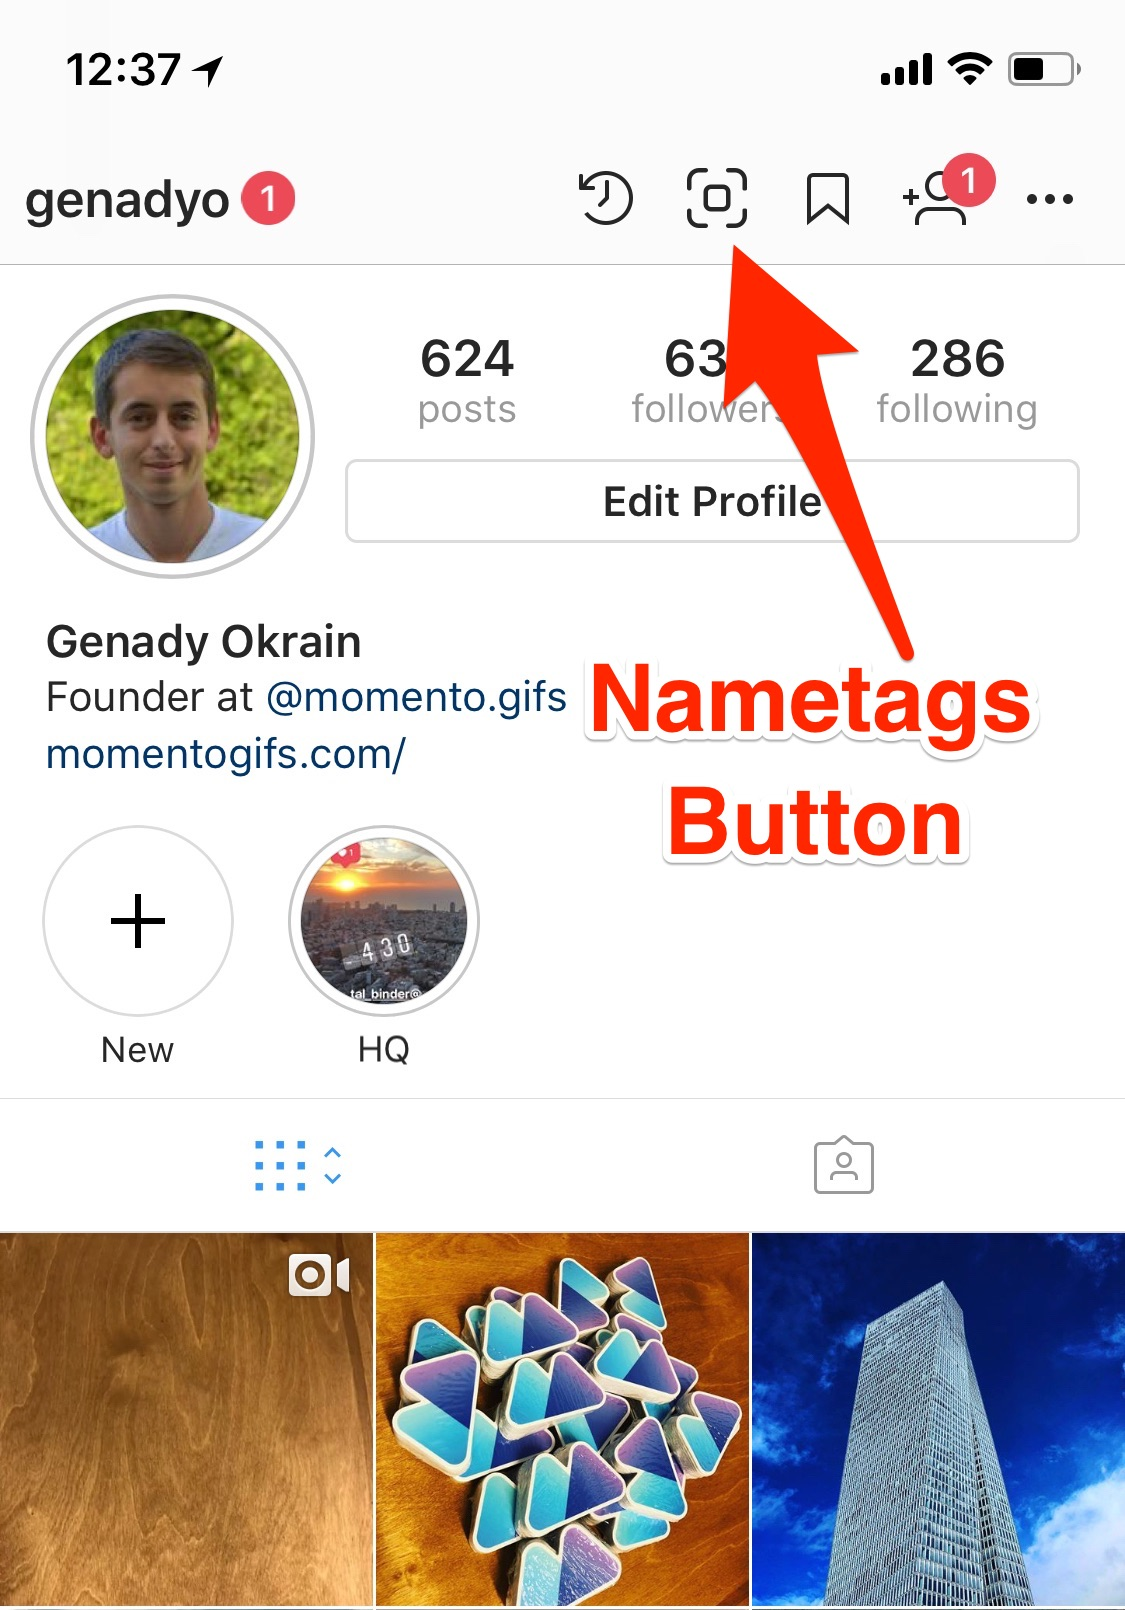 instagram testing nametags - nametags button